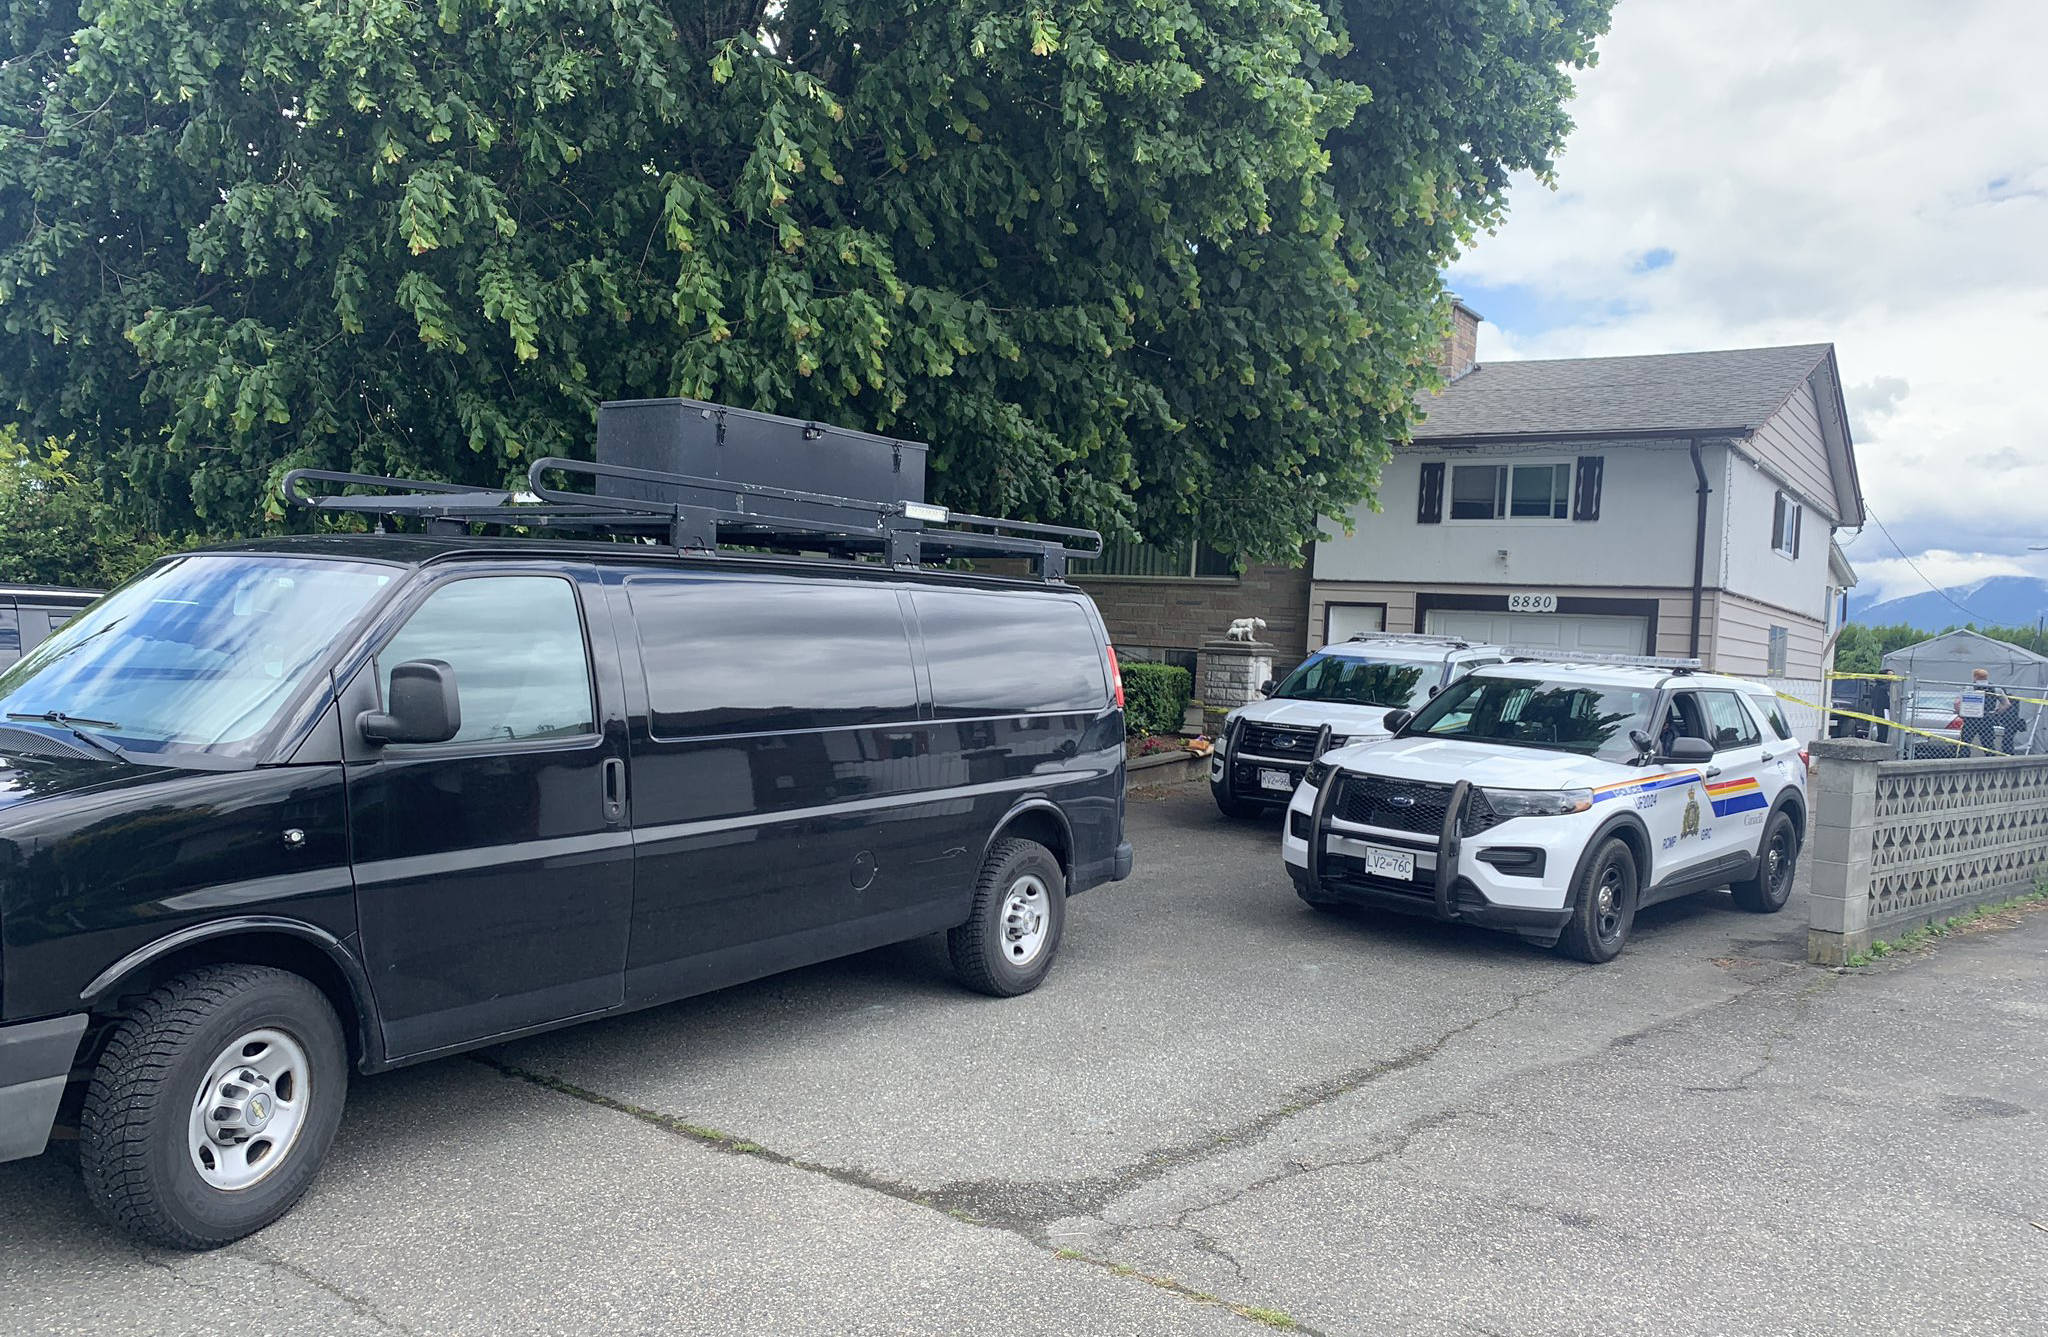 IHIT and RCMP forensics investigators are on scene at a Broadway Street house that may be connected to a shooting in Chilliwack early Thursday morning. (Paul Henderson/ Chilliwack Progress)